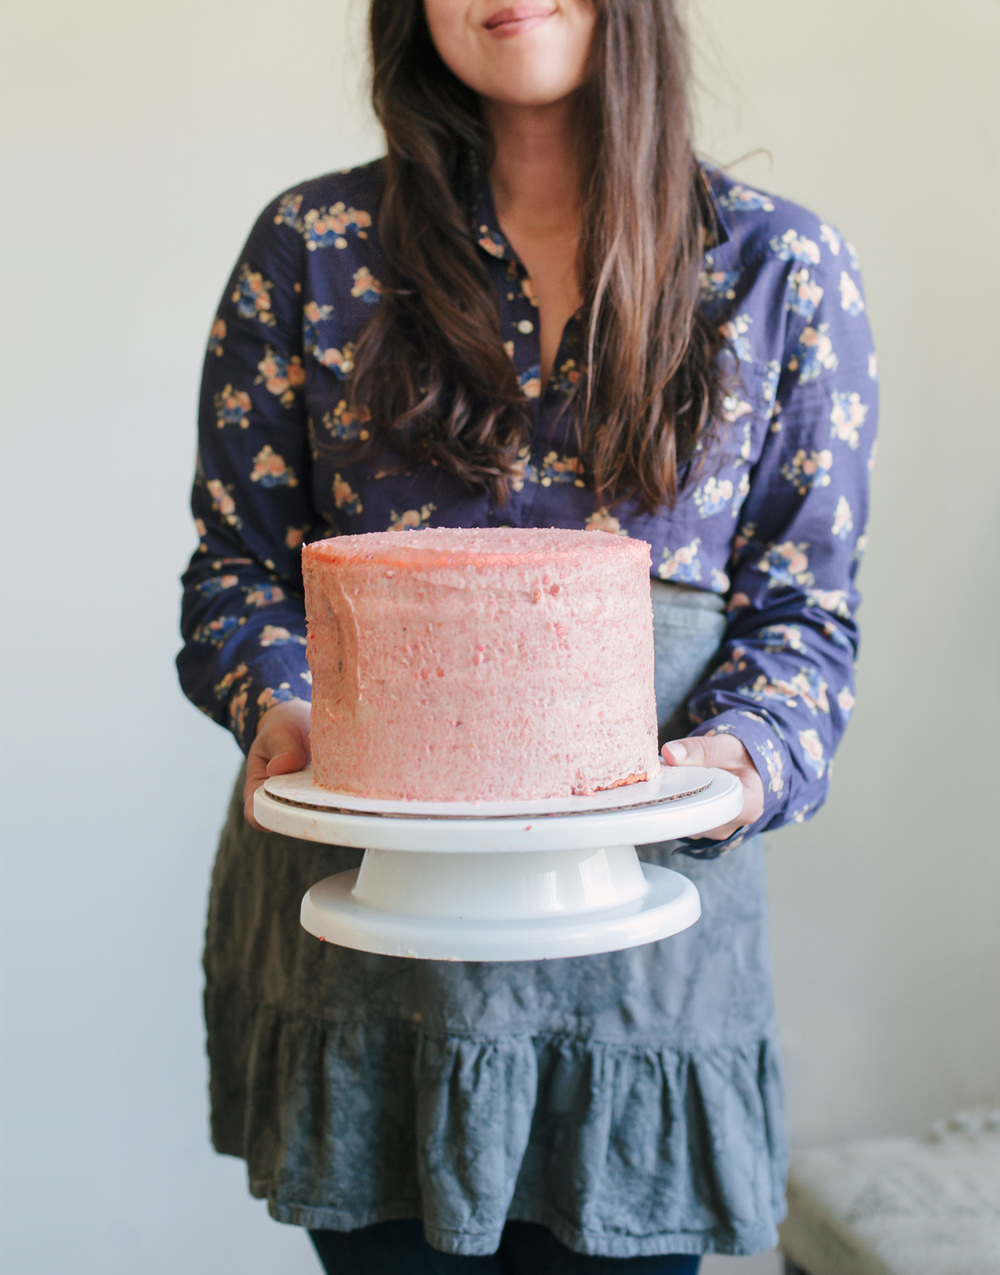 Frosted sweets & pretty cake stands will continue to be a motif that represent a part of myself that I will always love dearly. Wayne Thiebaud & Bill Cunningham are among my favorite inspirations.